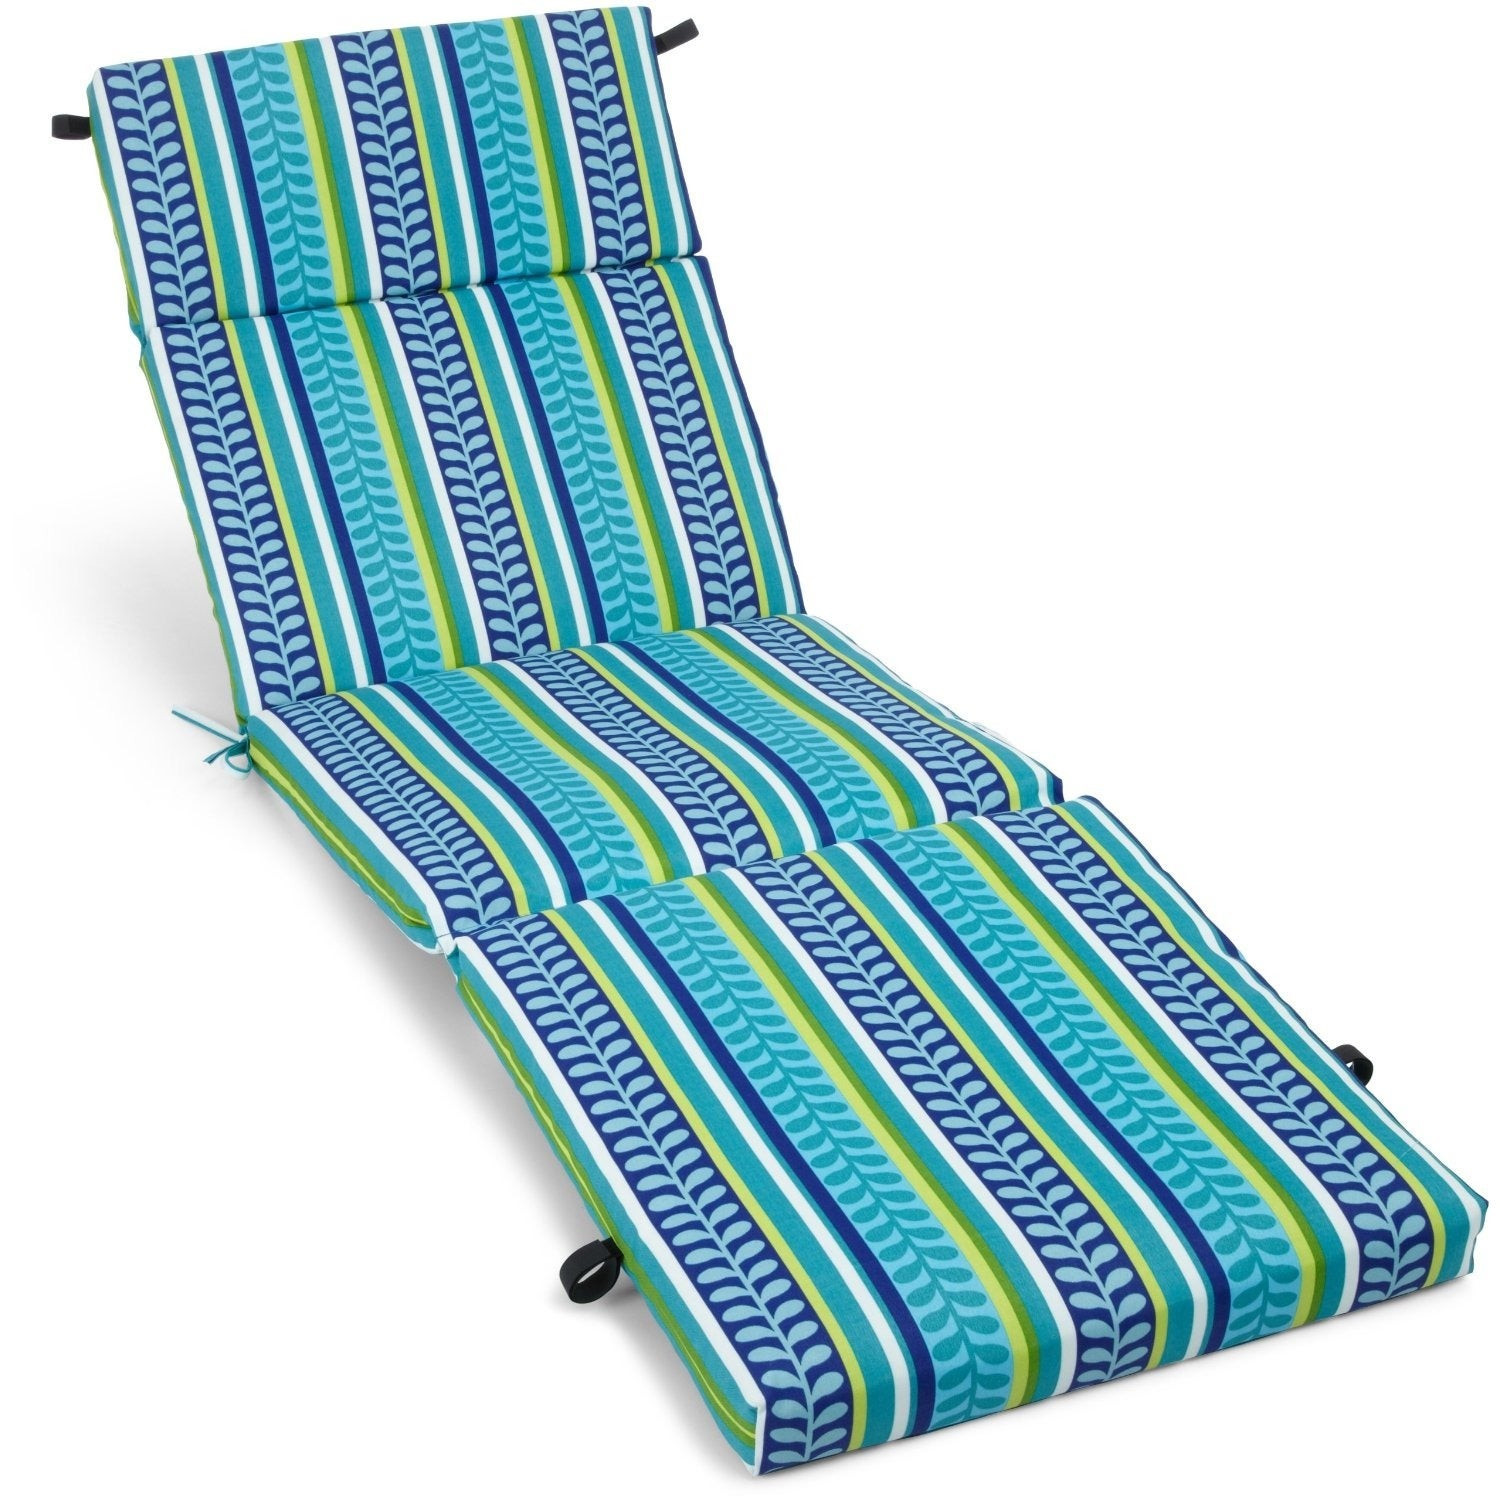 wayfair reviews sunbrella eddie cushion chaise outdoor cushions bauer sale pdx on lounge